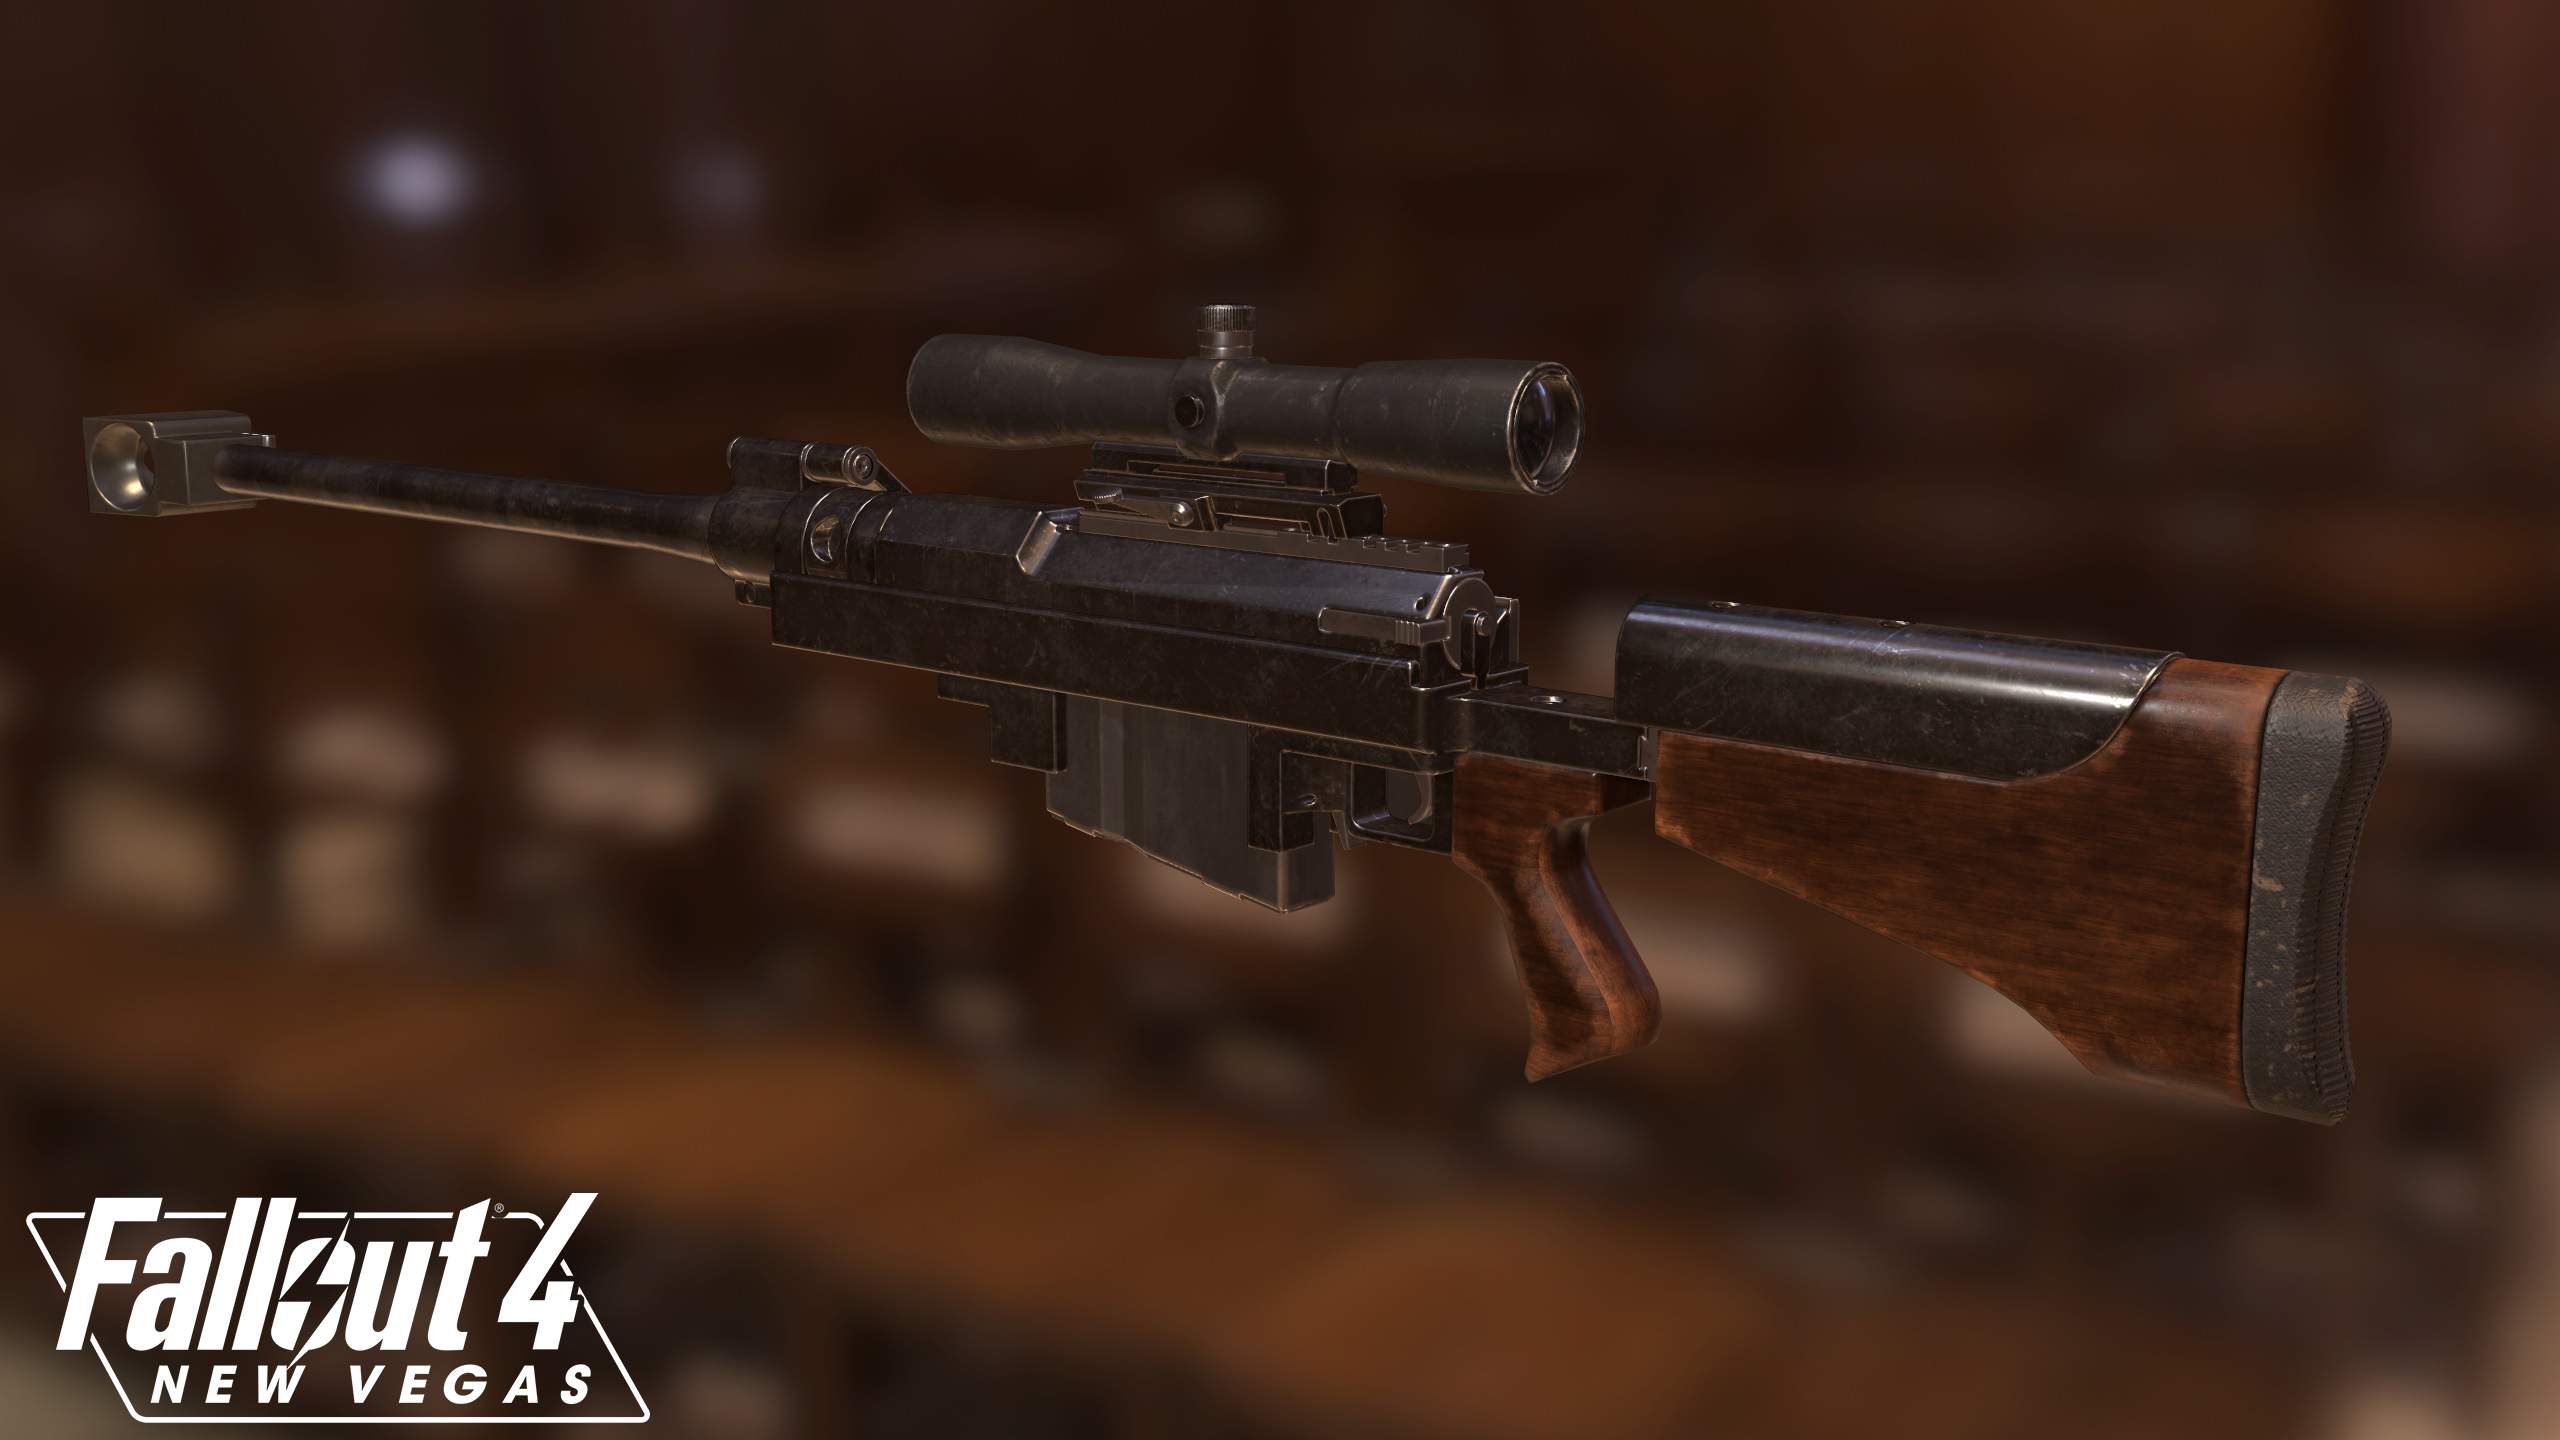 Anti Materiel Rifle anti-materiel rifle image - fallout 4: new vegas mod for